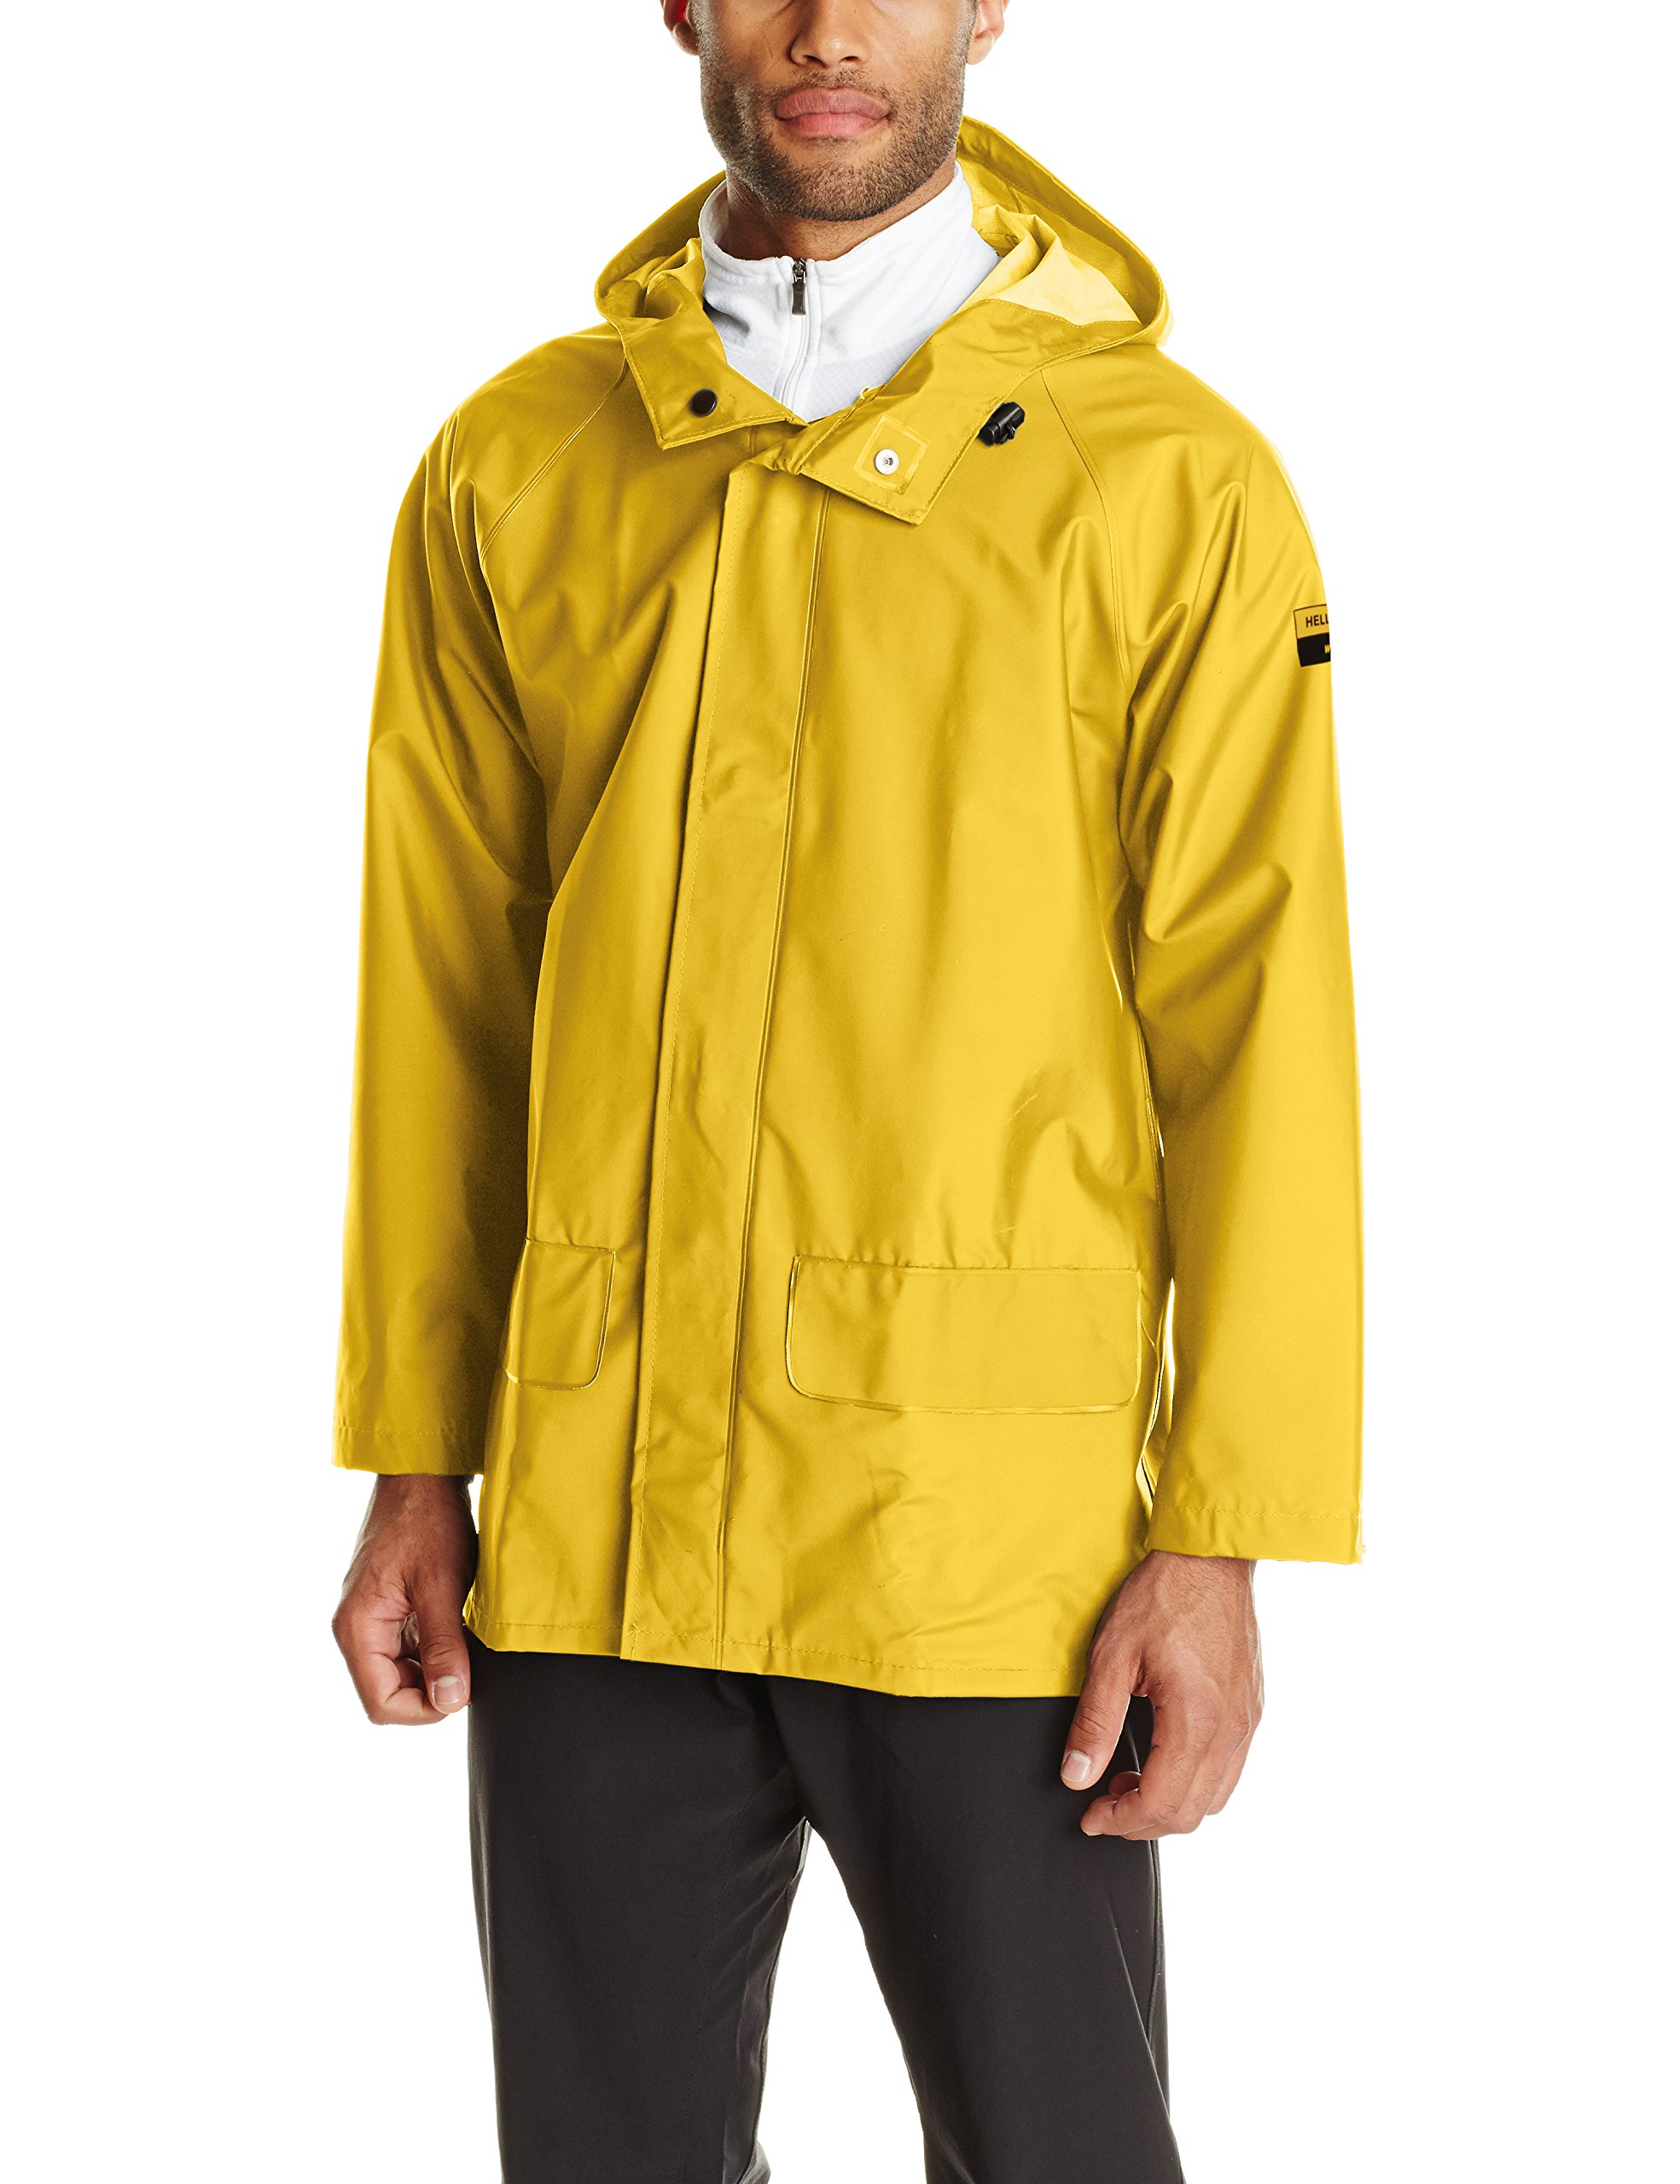 Helly Hansen Workwear Men's Mandal Rain Jacket, Light Yellow, 4X-Large